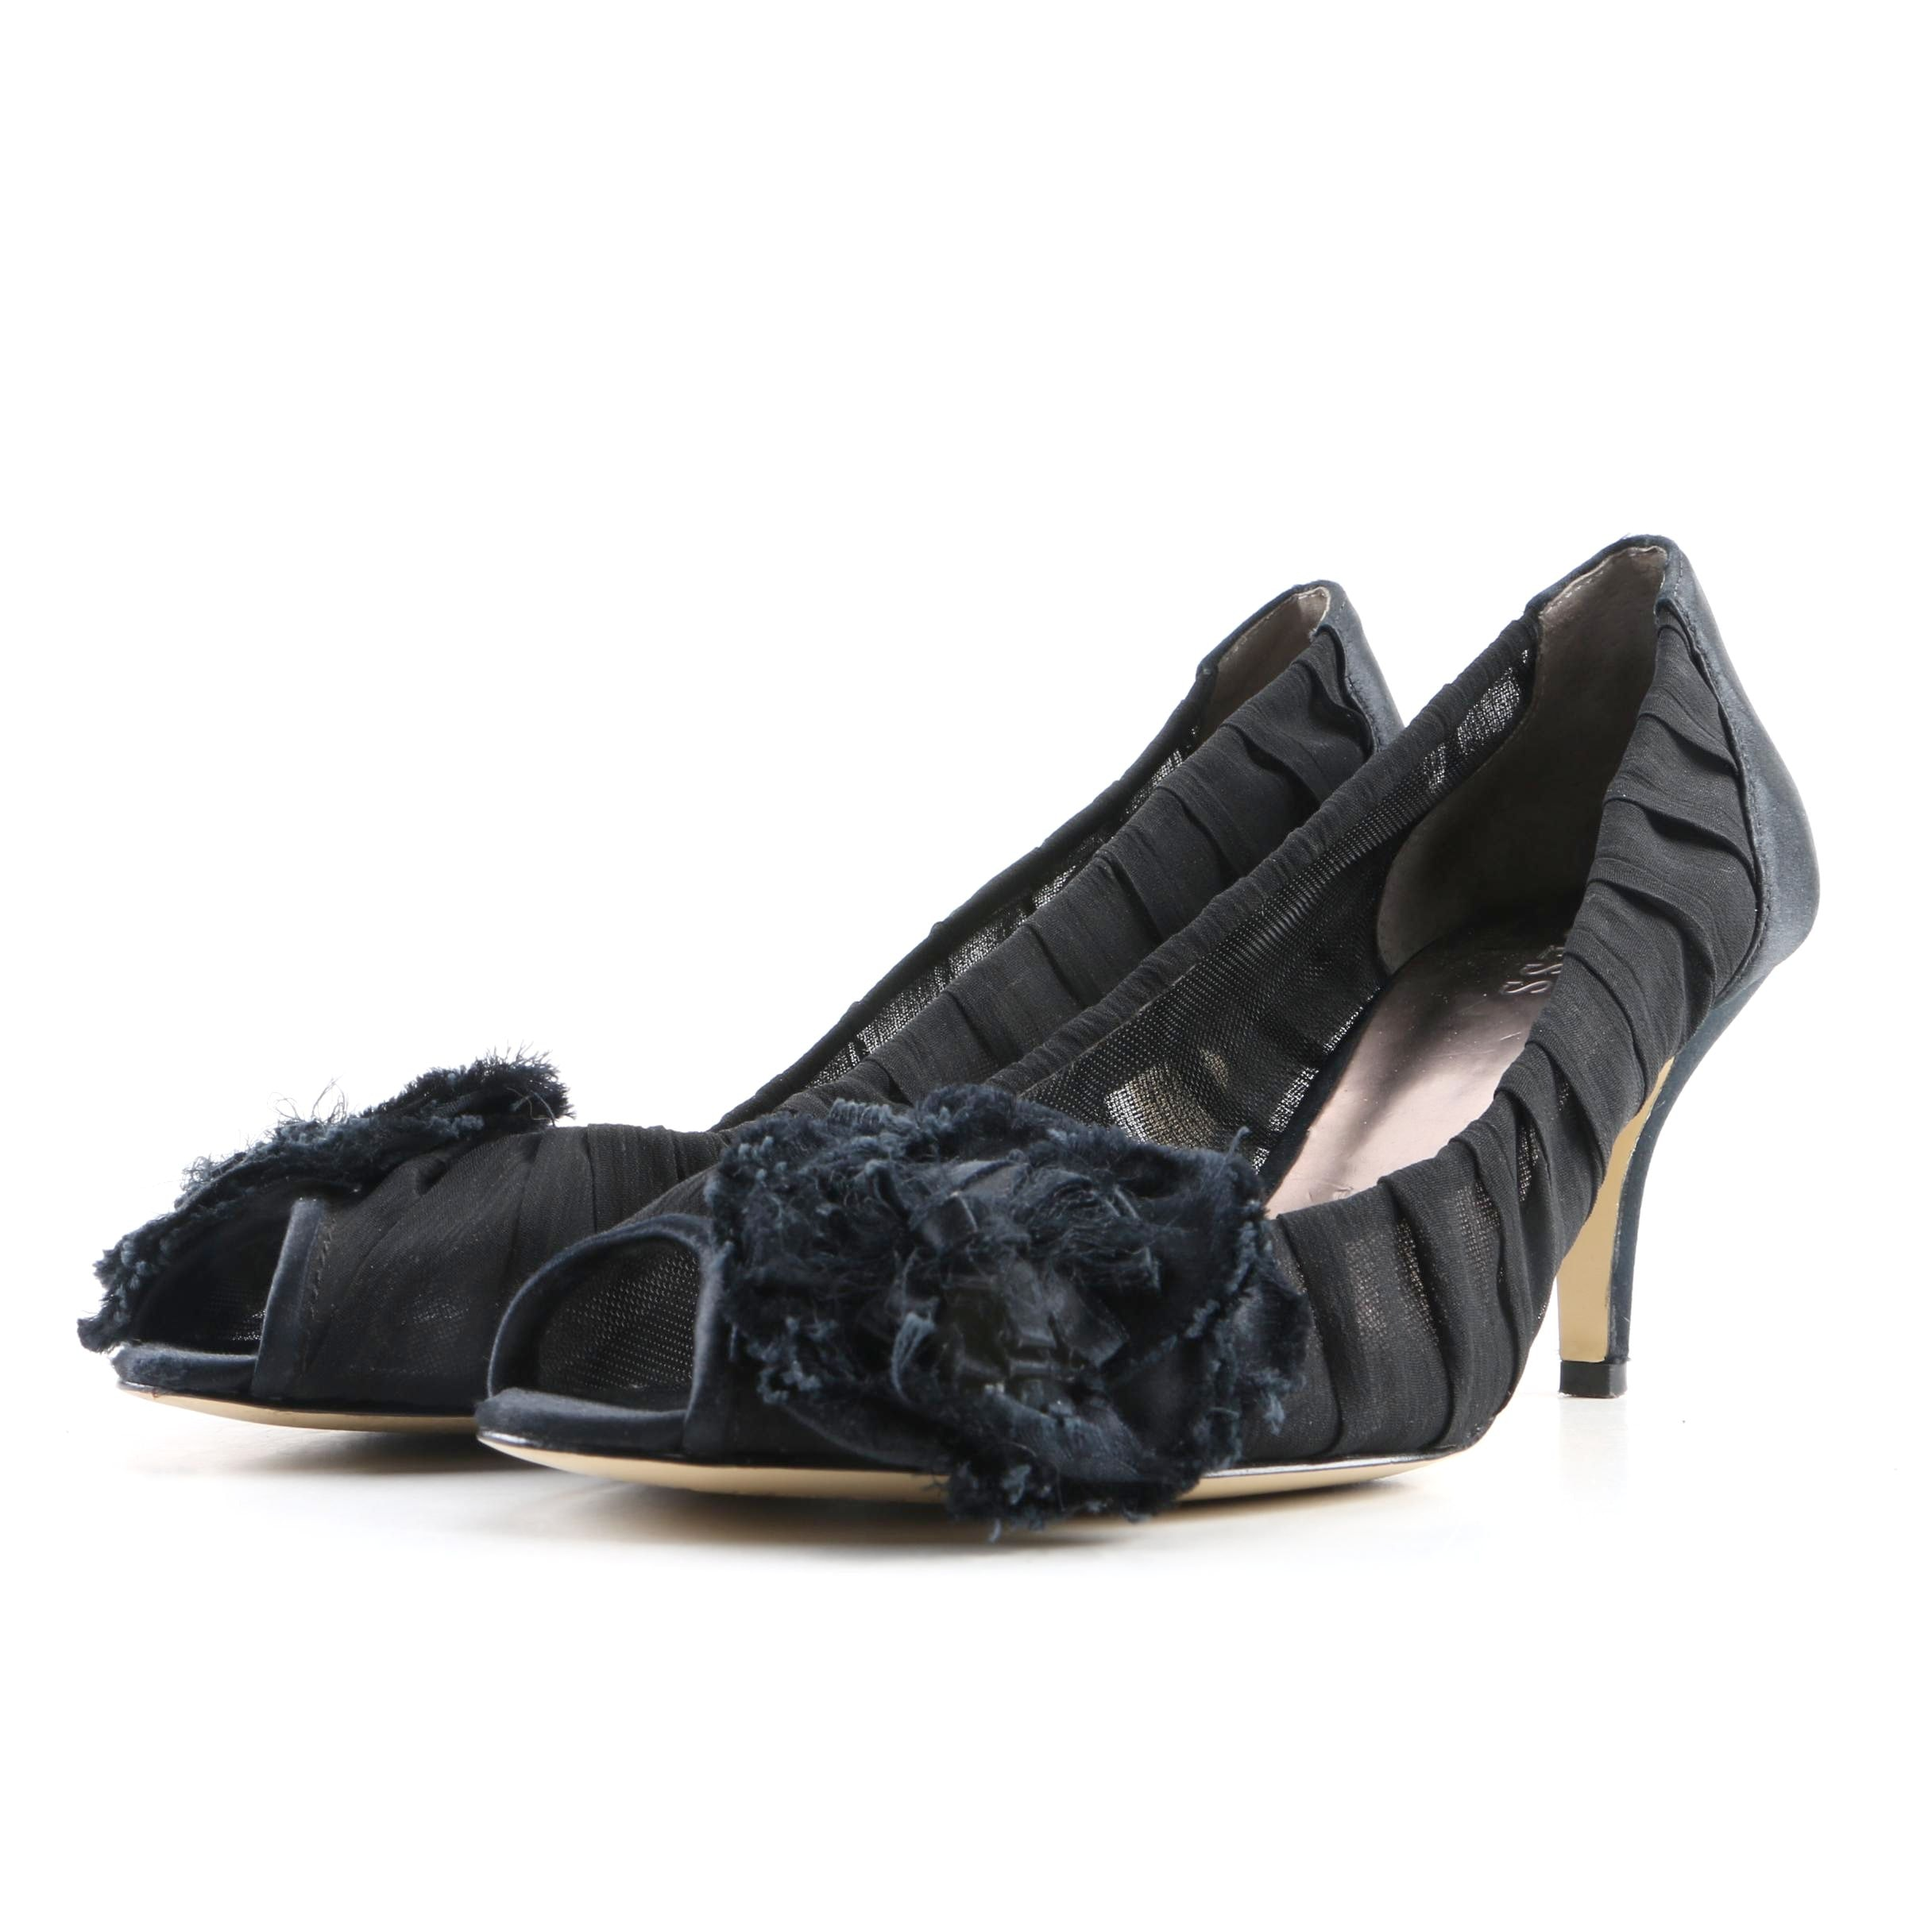 Guess Black Pleated Mesh Peep Toed Pumps with Flower Embellishments